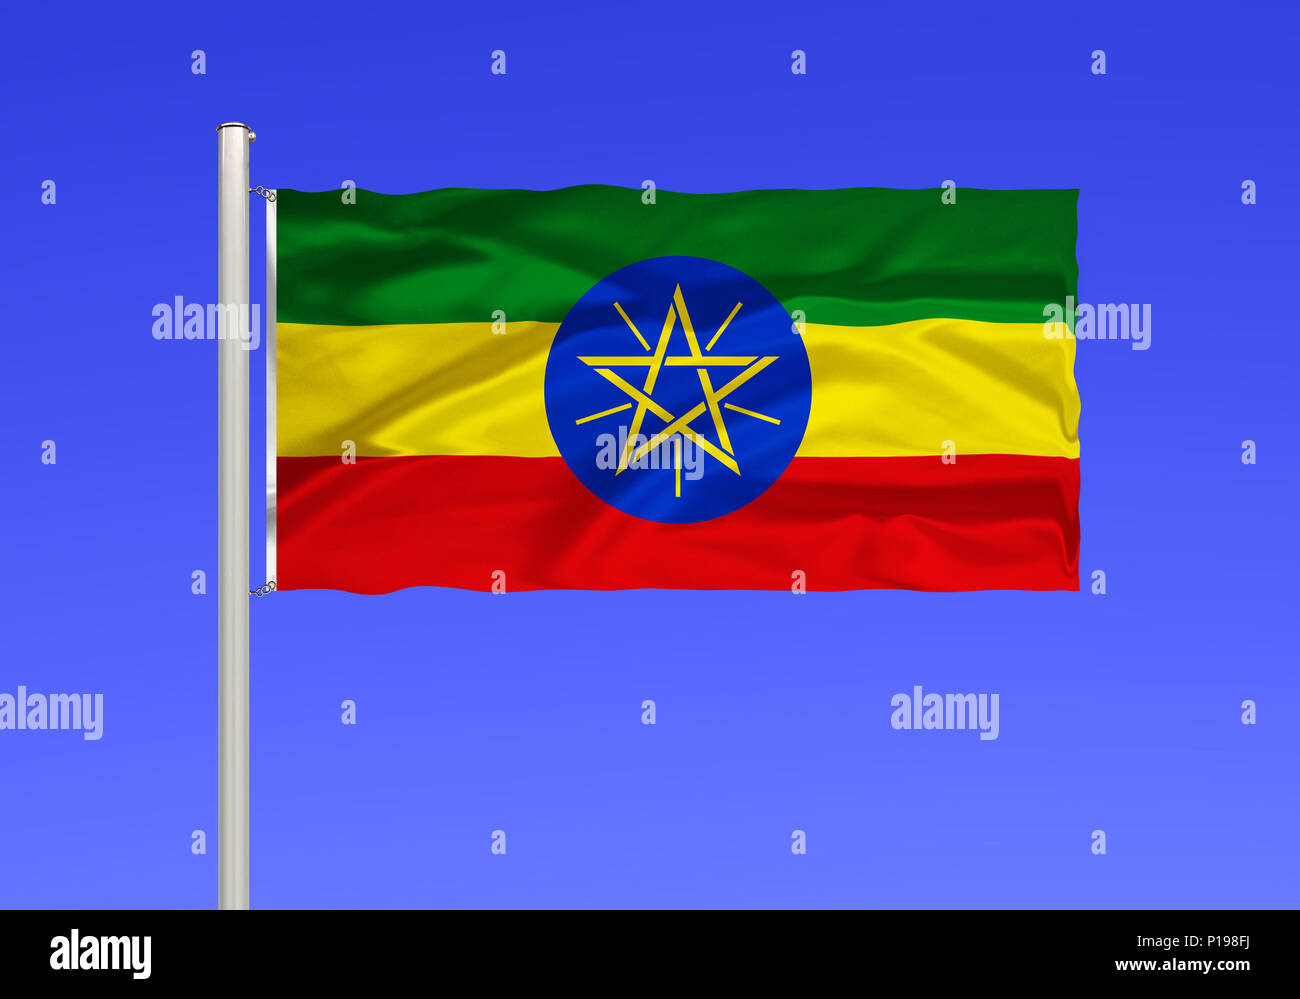 Flag of Ethiopia, landlocked country in North Africa, Africa, formerly abyssinia, the capital is Addis Ababa,, Flagge von Aethiopien, Binnenstaat in N Stock Photo